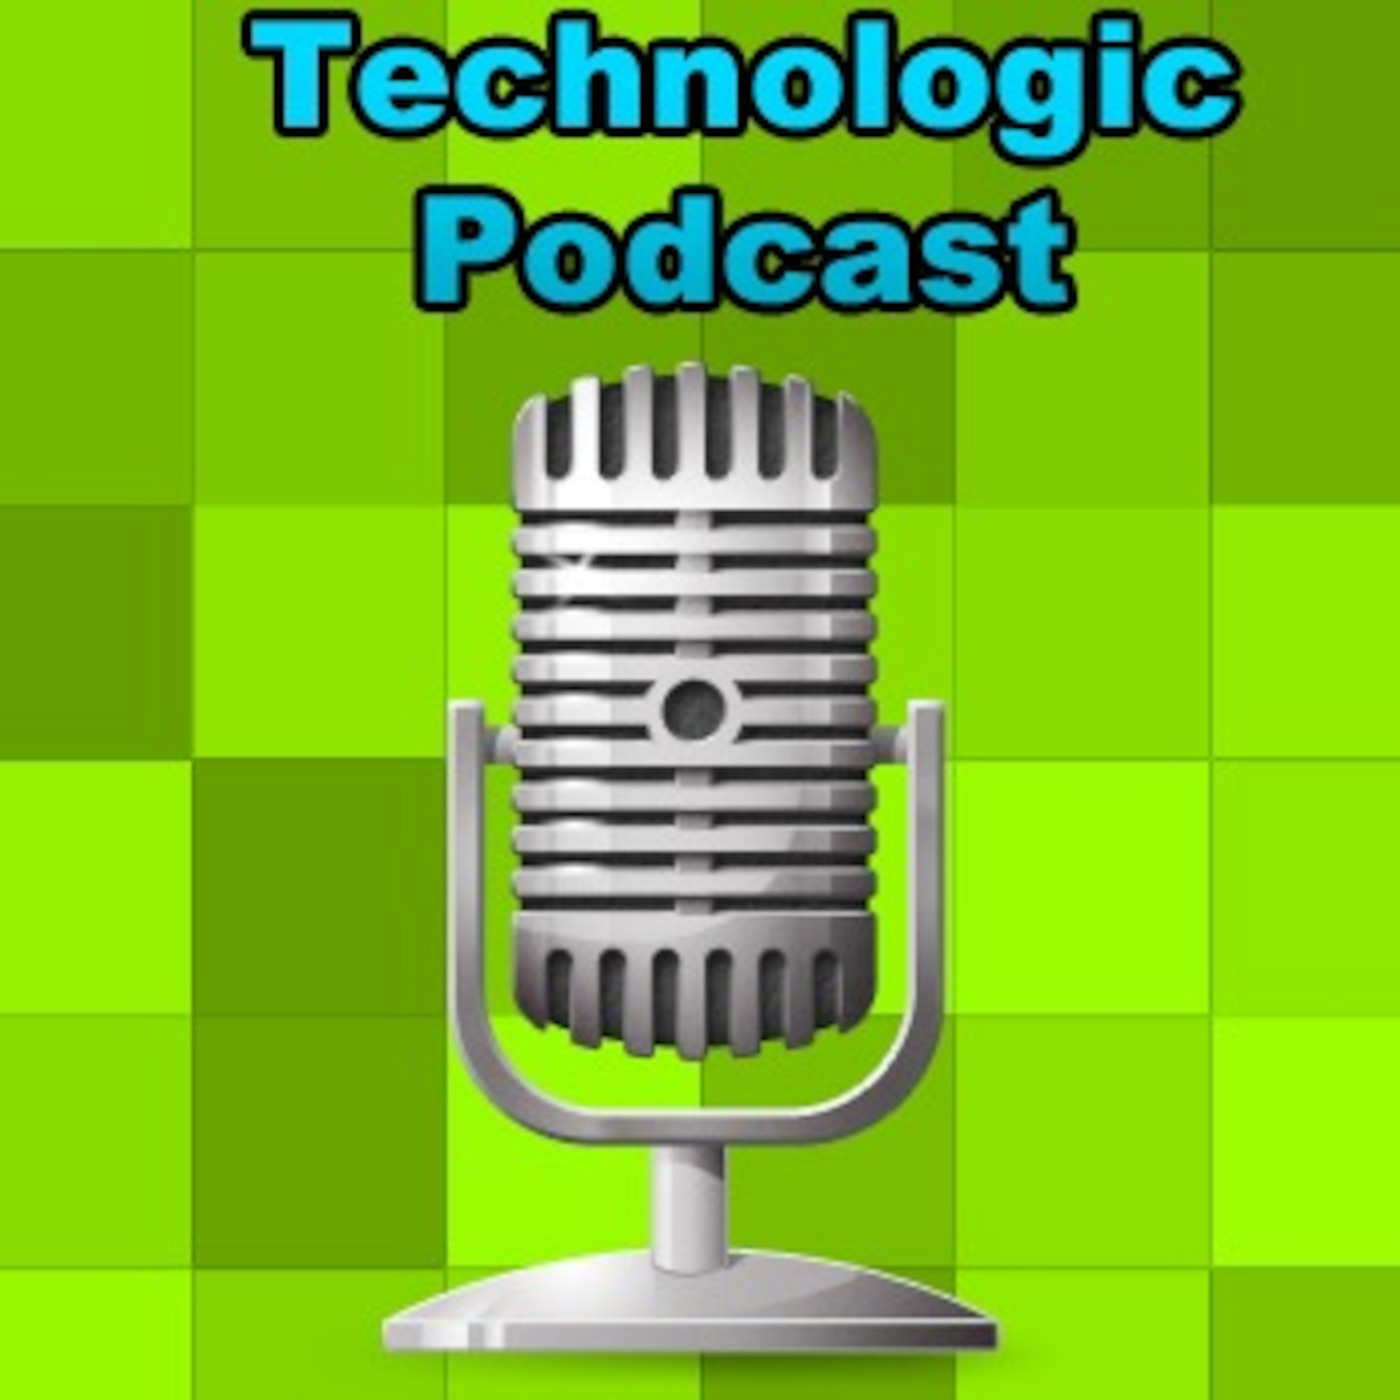 Technologic Podcast